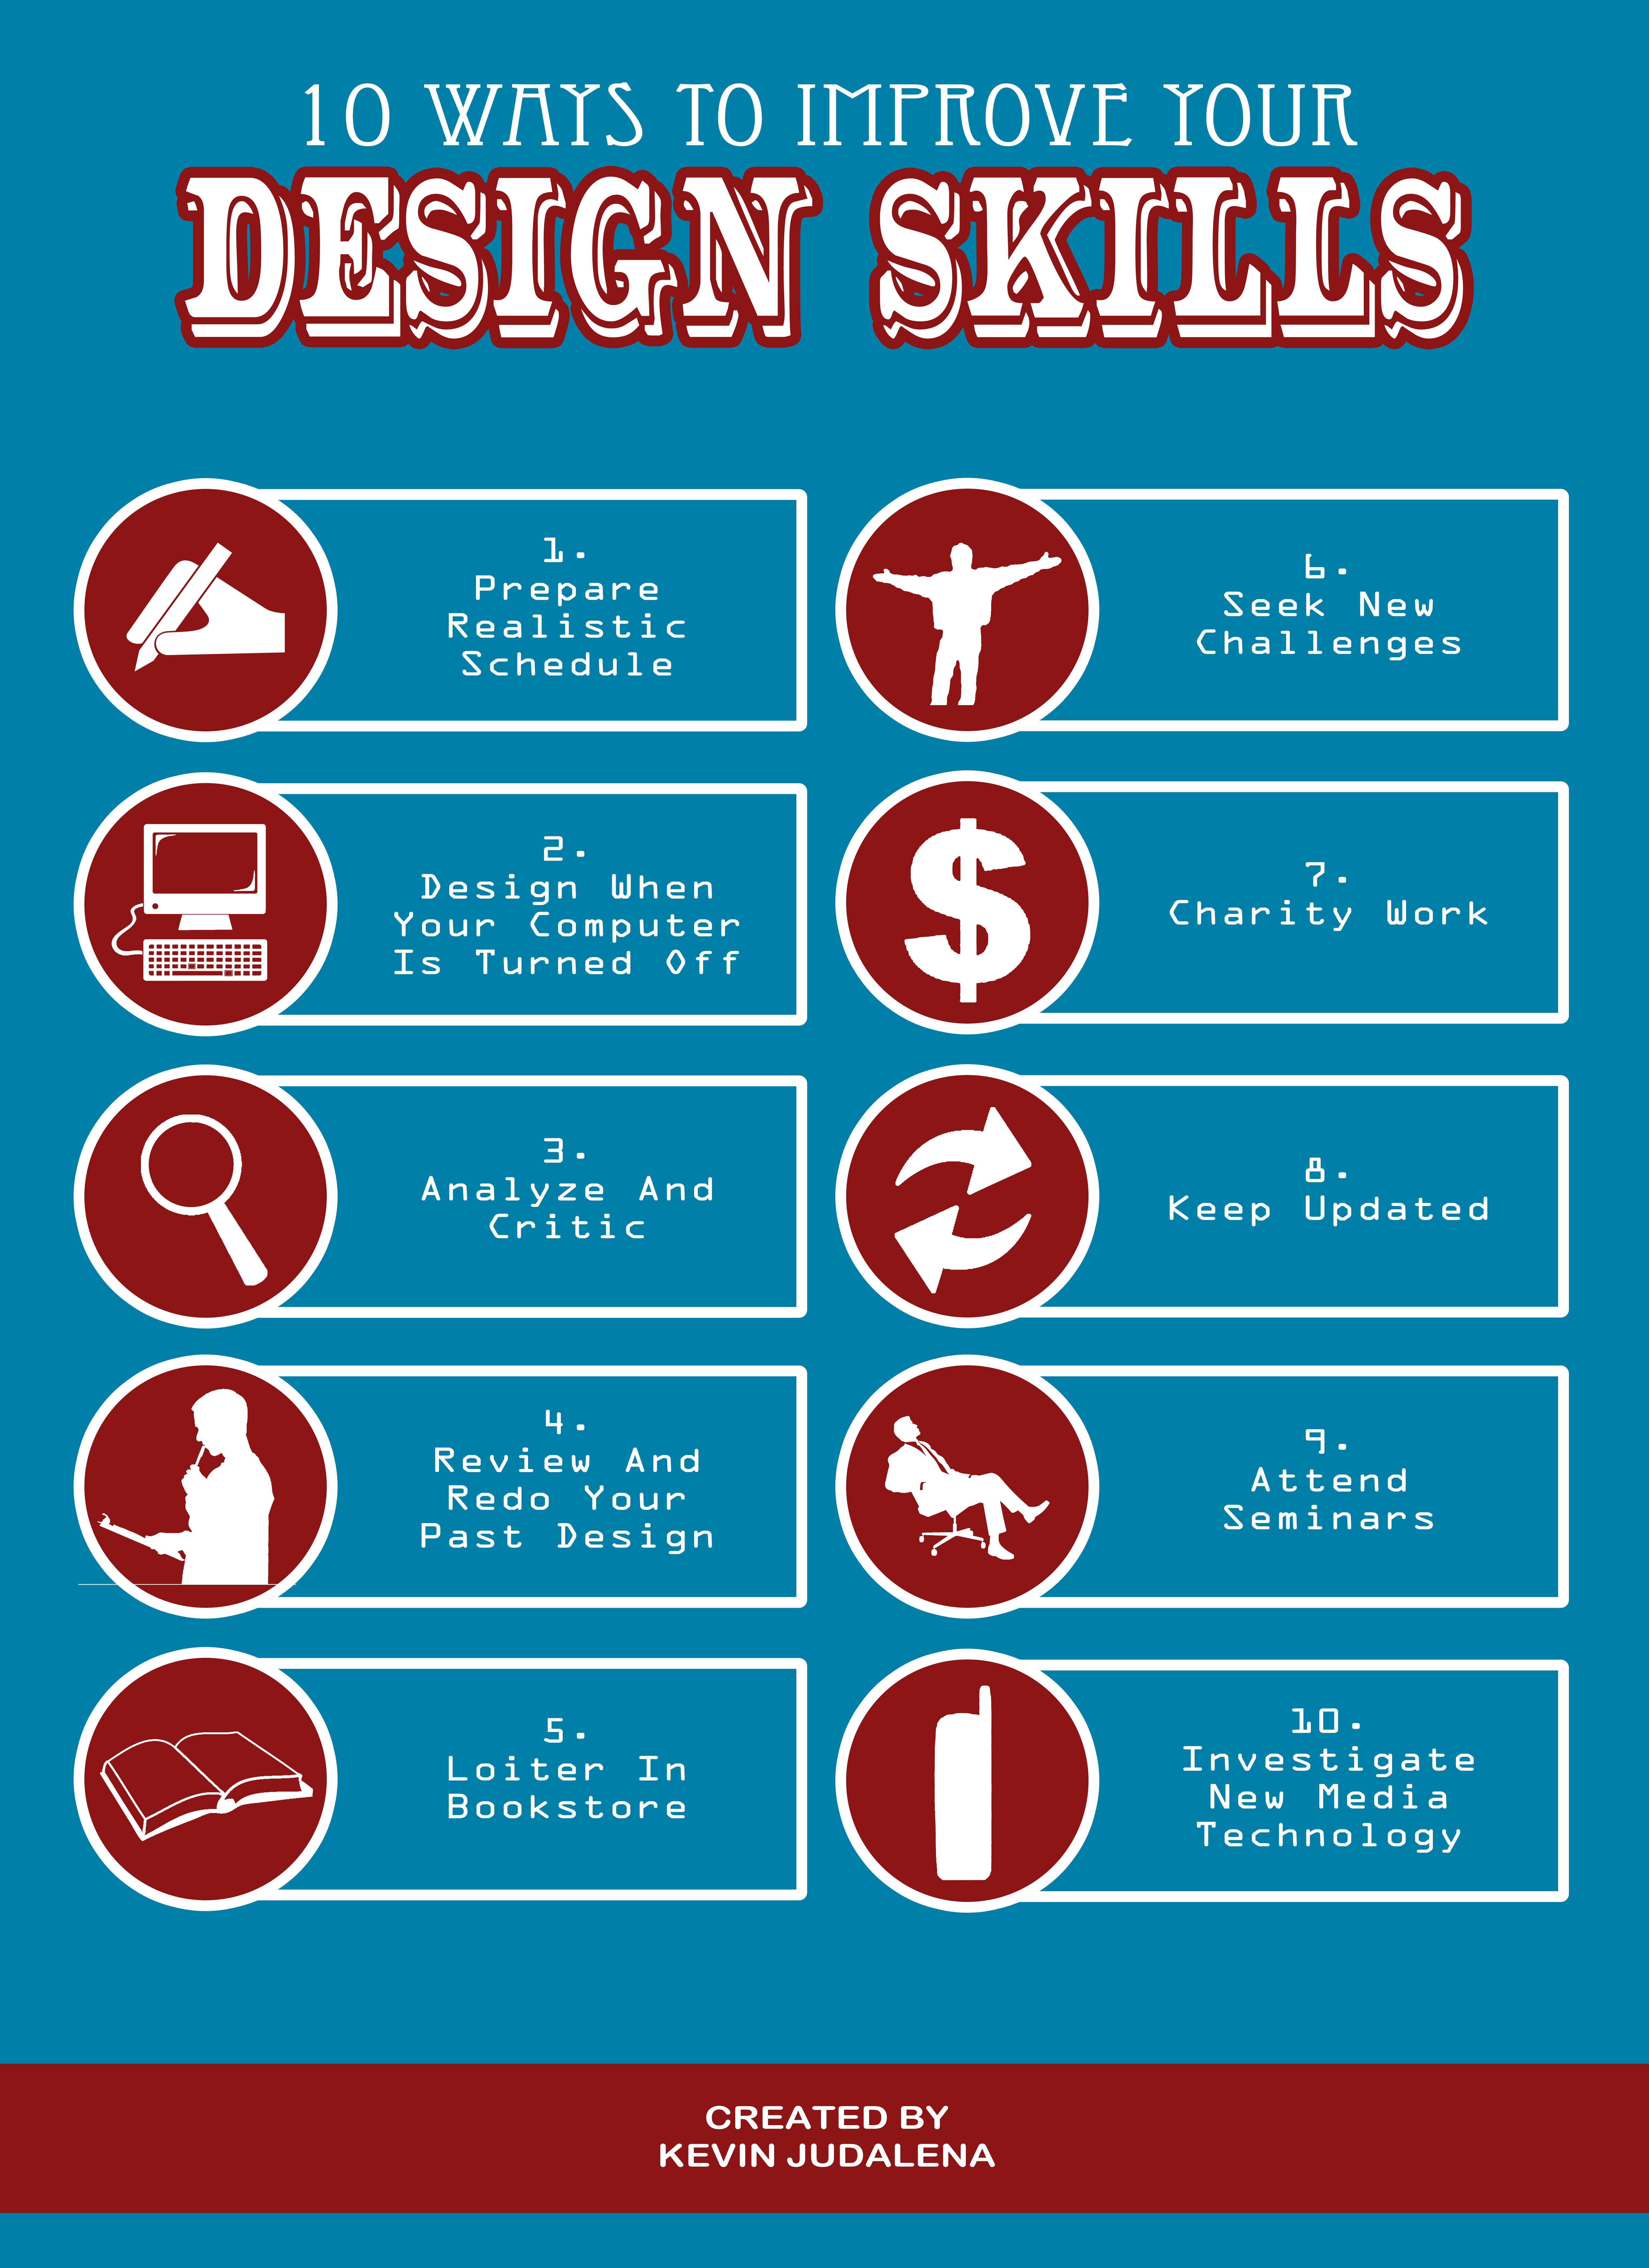 10 ways to improve your design skills infographic design 10 ways to improve your design skills infographic design infographic infographics infographic and design